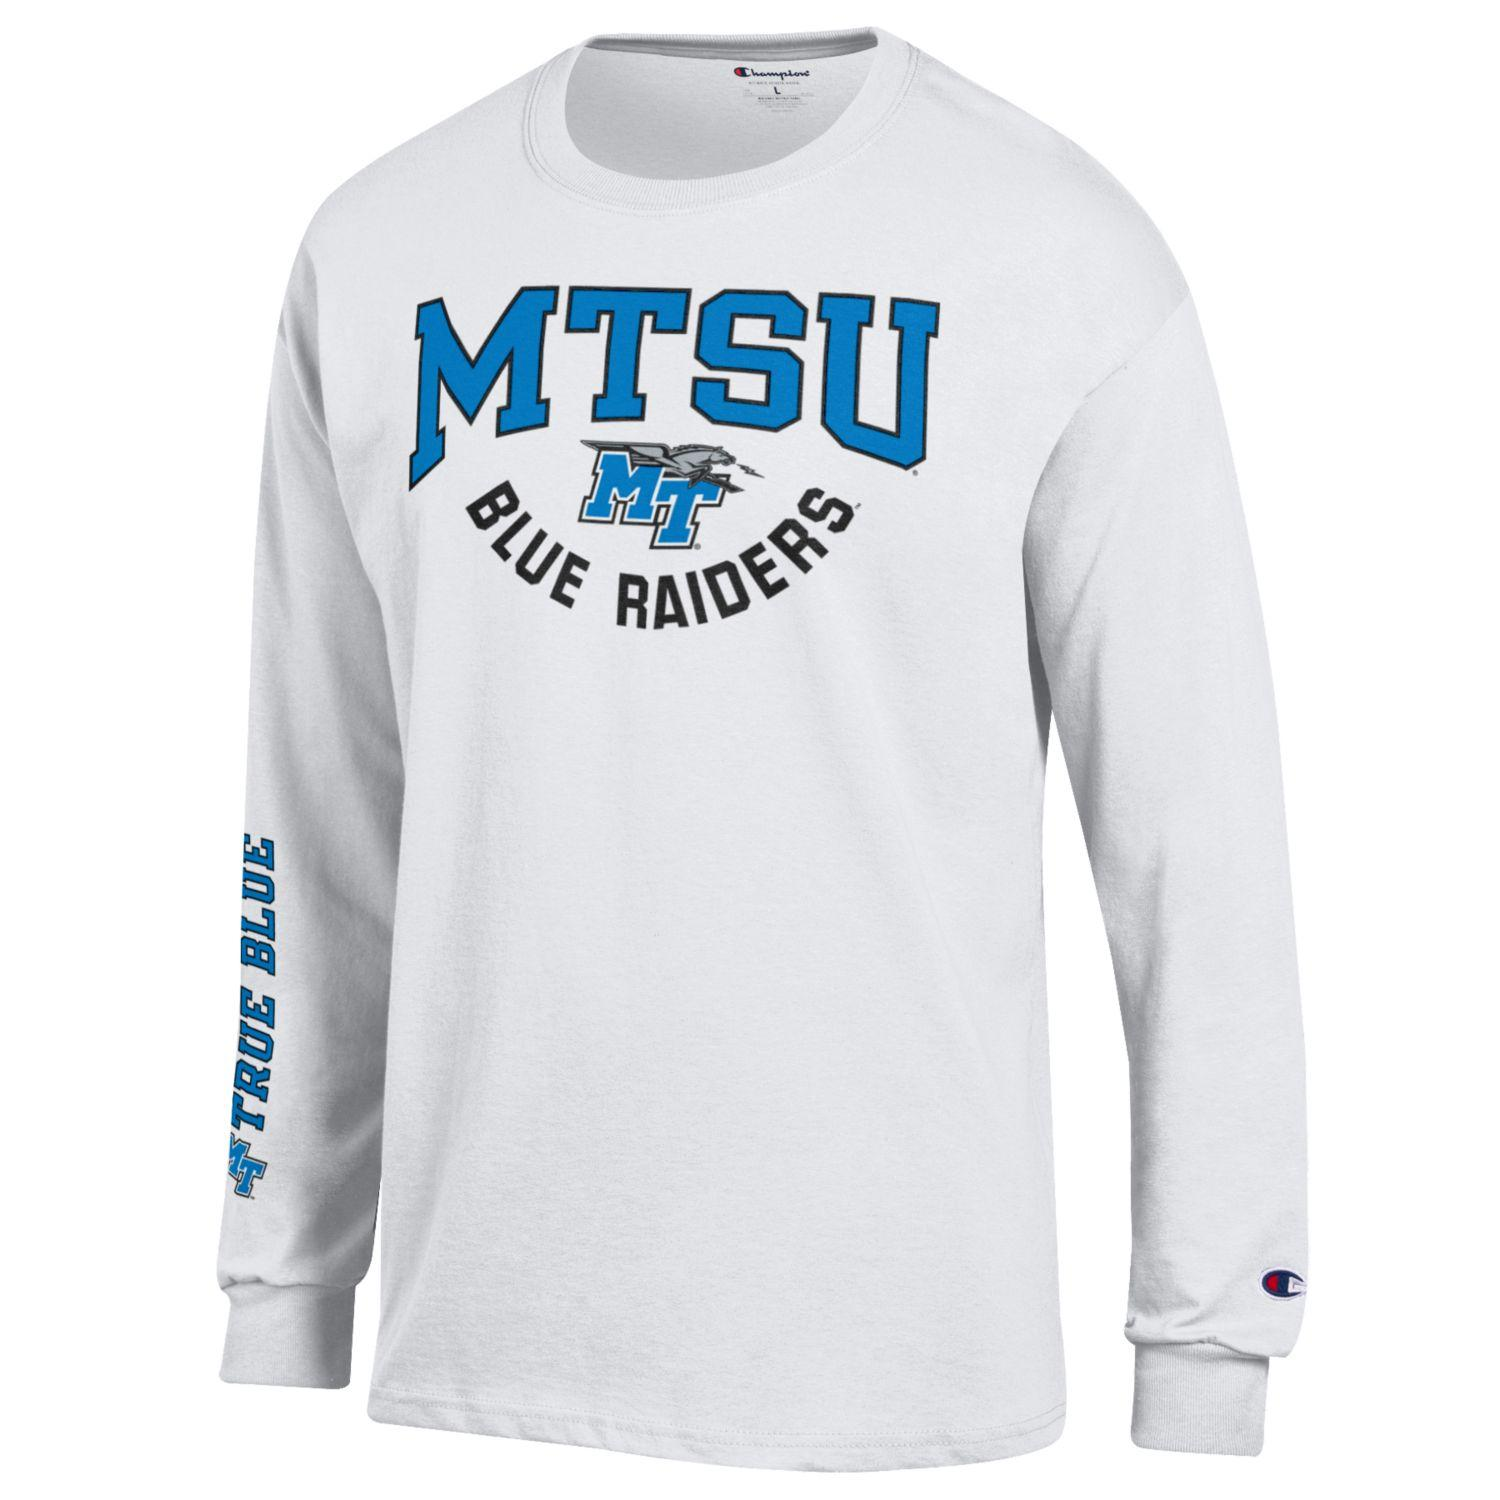 MTSU Blue Raiders True Blue Long Sleeve Shirt